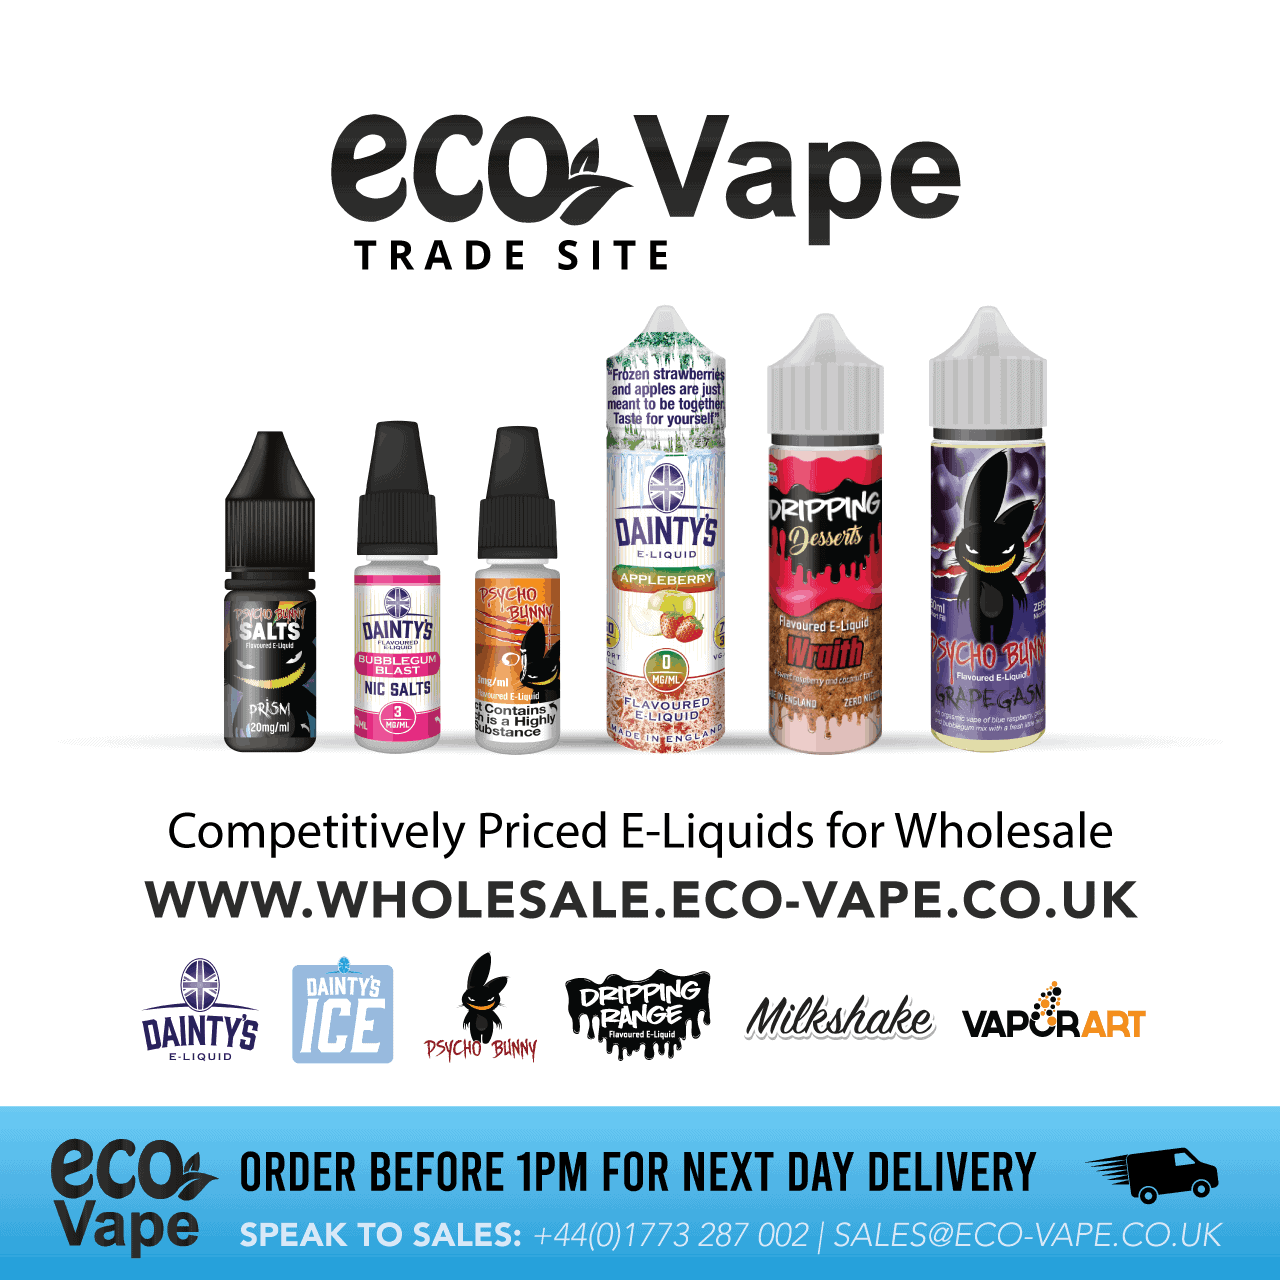 Order your favourite E-Liquids and Hardware faster, easier, and at your convenience at wholesale.eco-vape.co.uk